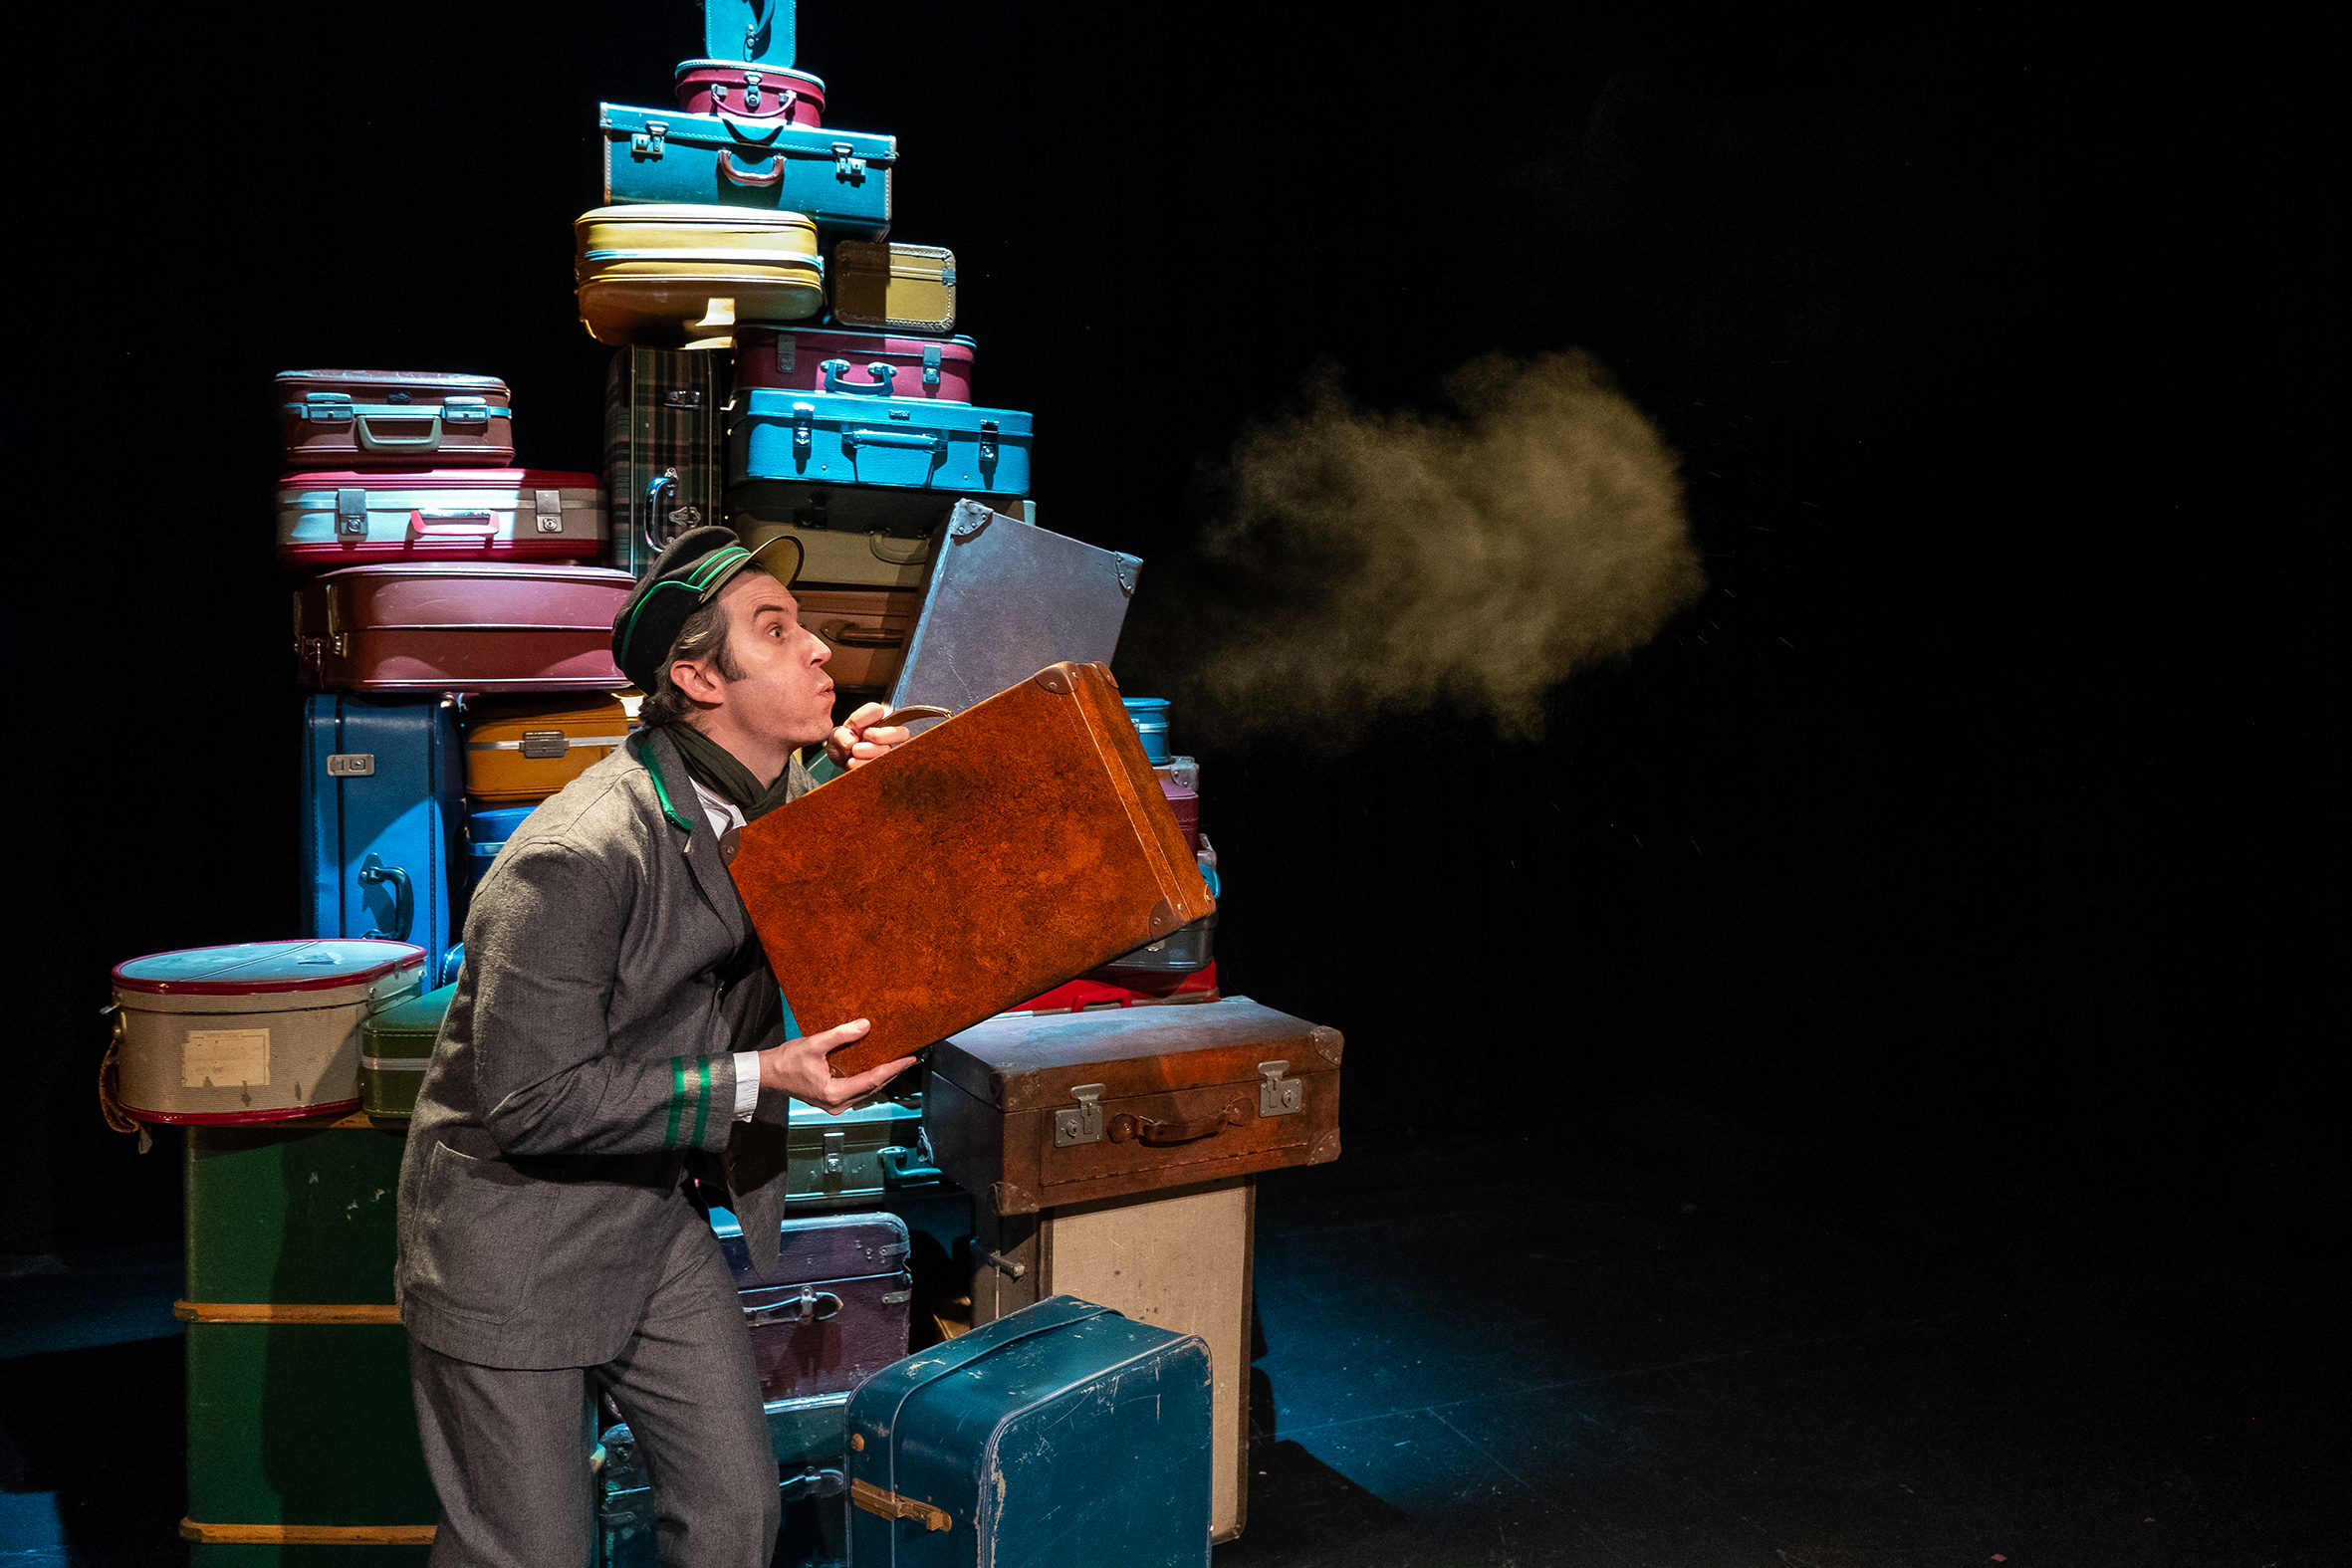 Press Image from Little Gift Theatre show for children a man standing in front of lots of suitcases